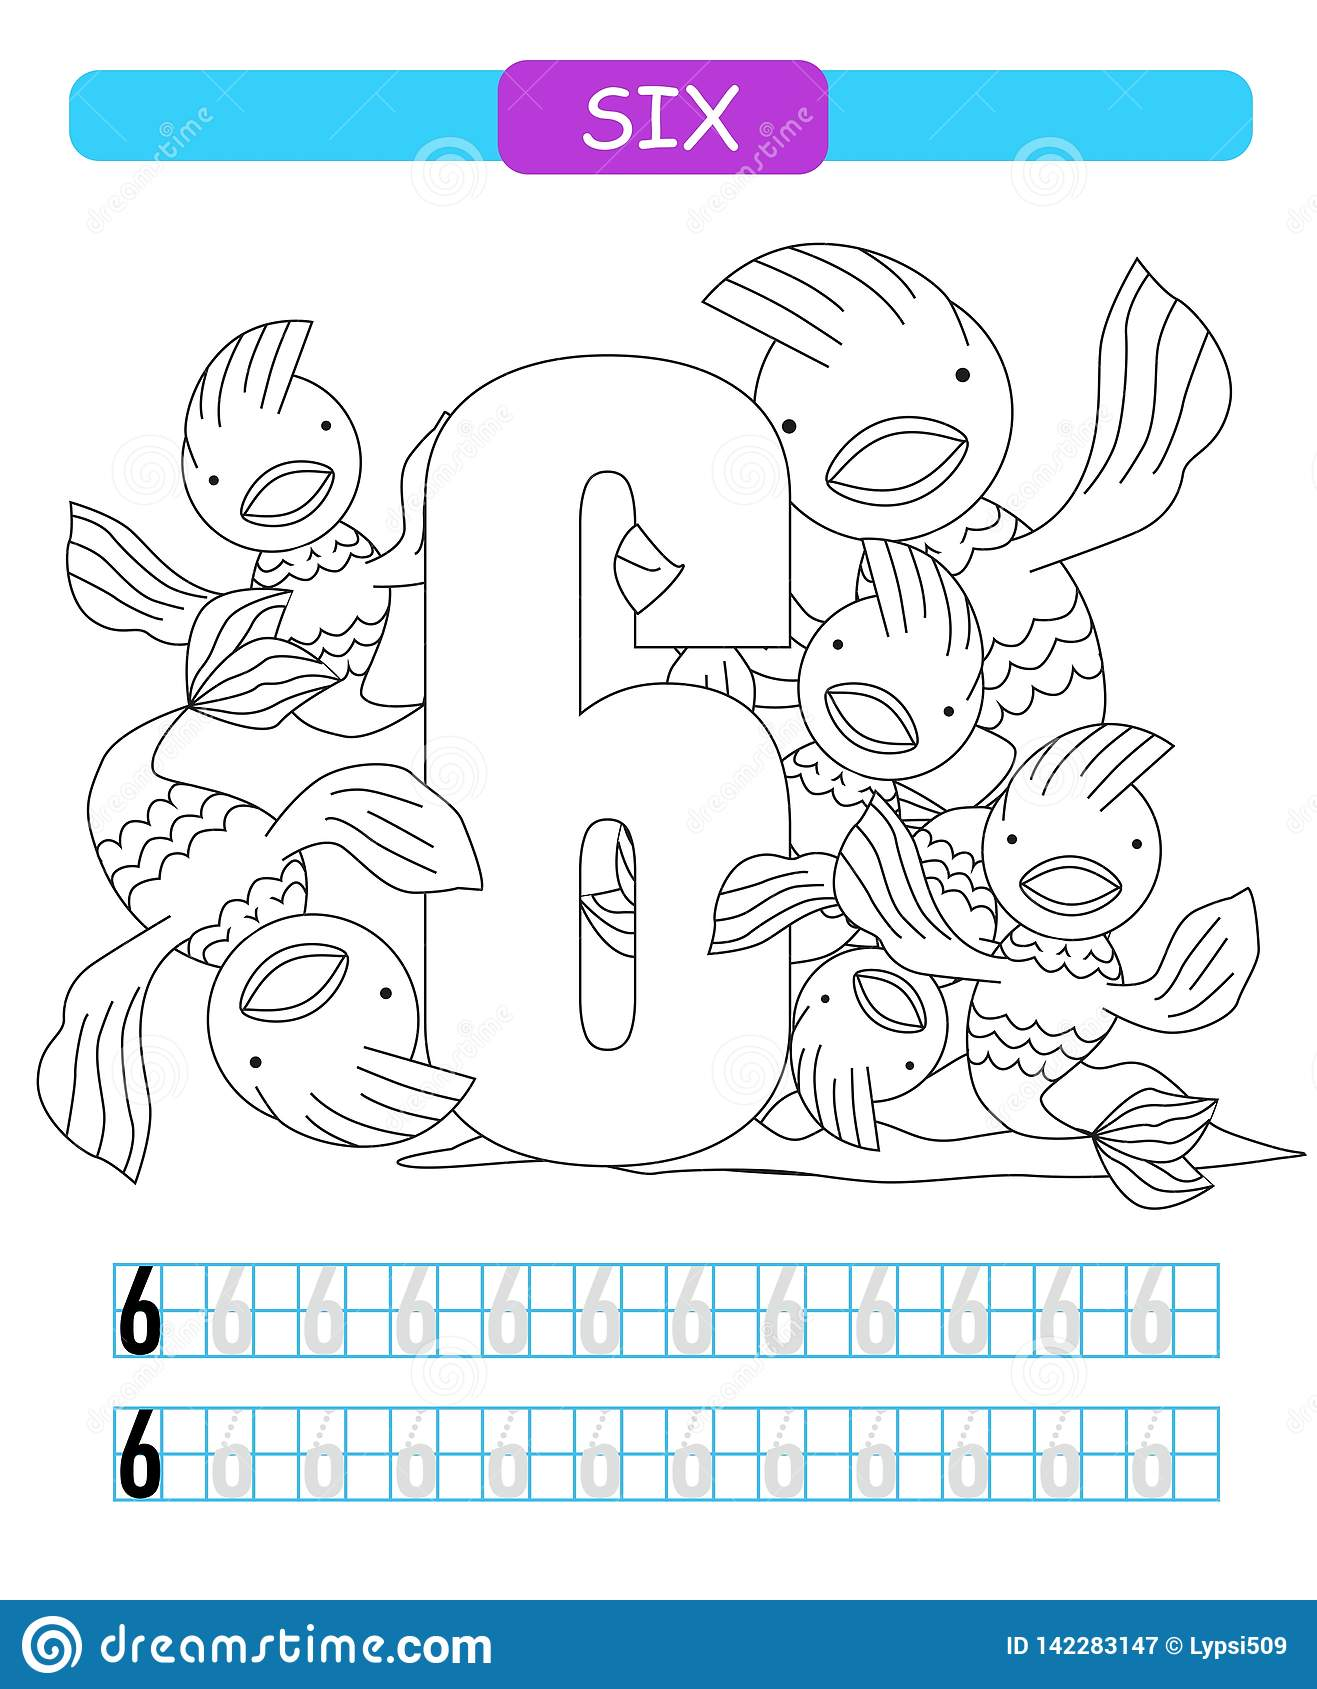 Six Learning Number 6 Coloring Printable Worksheet For